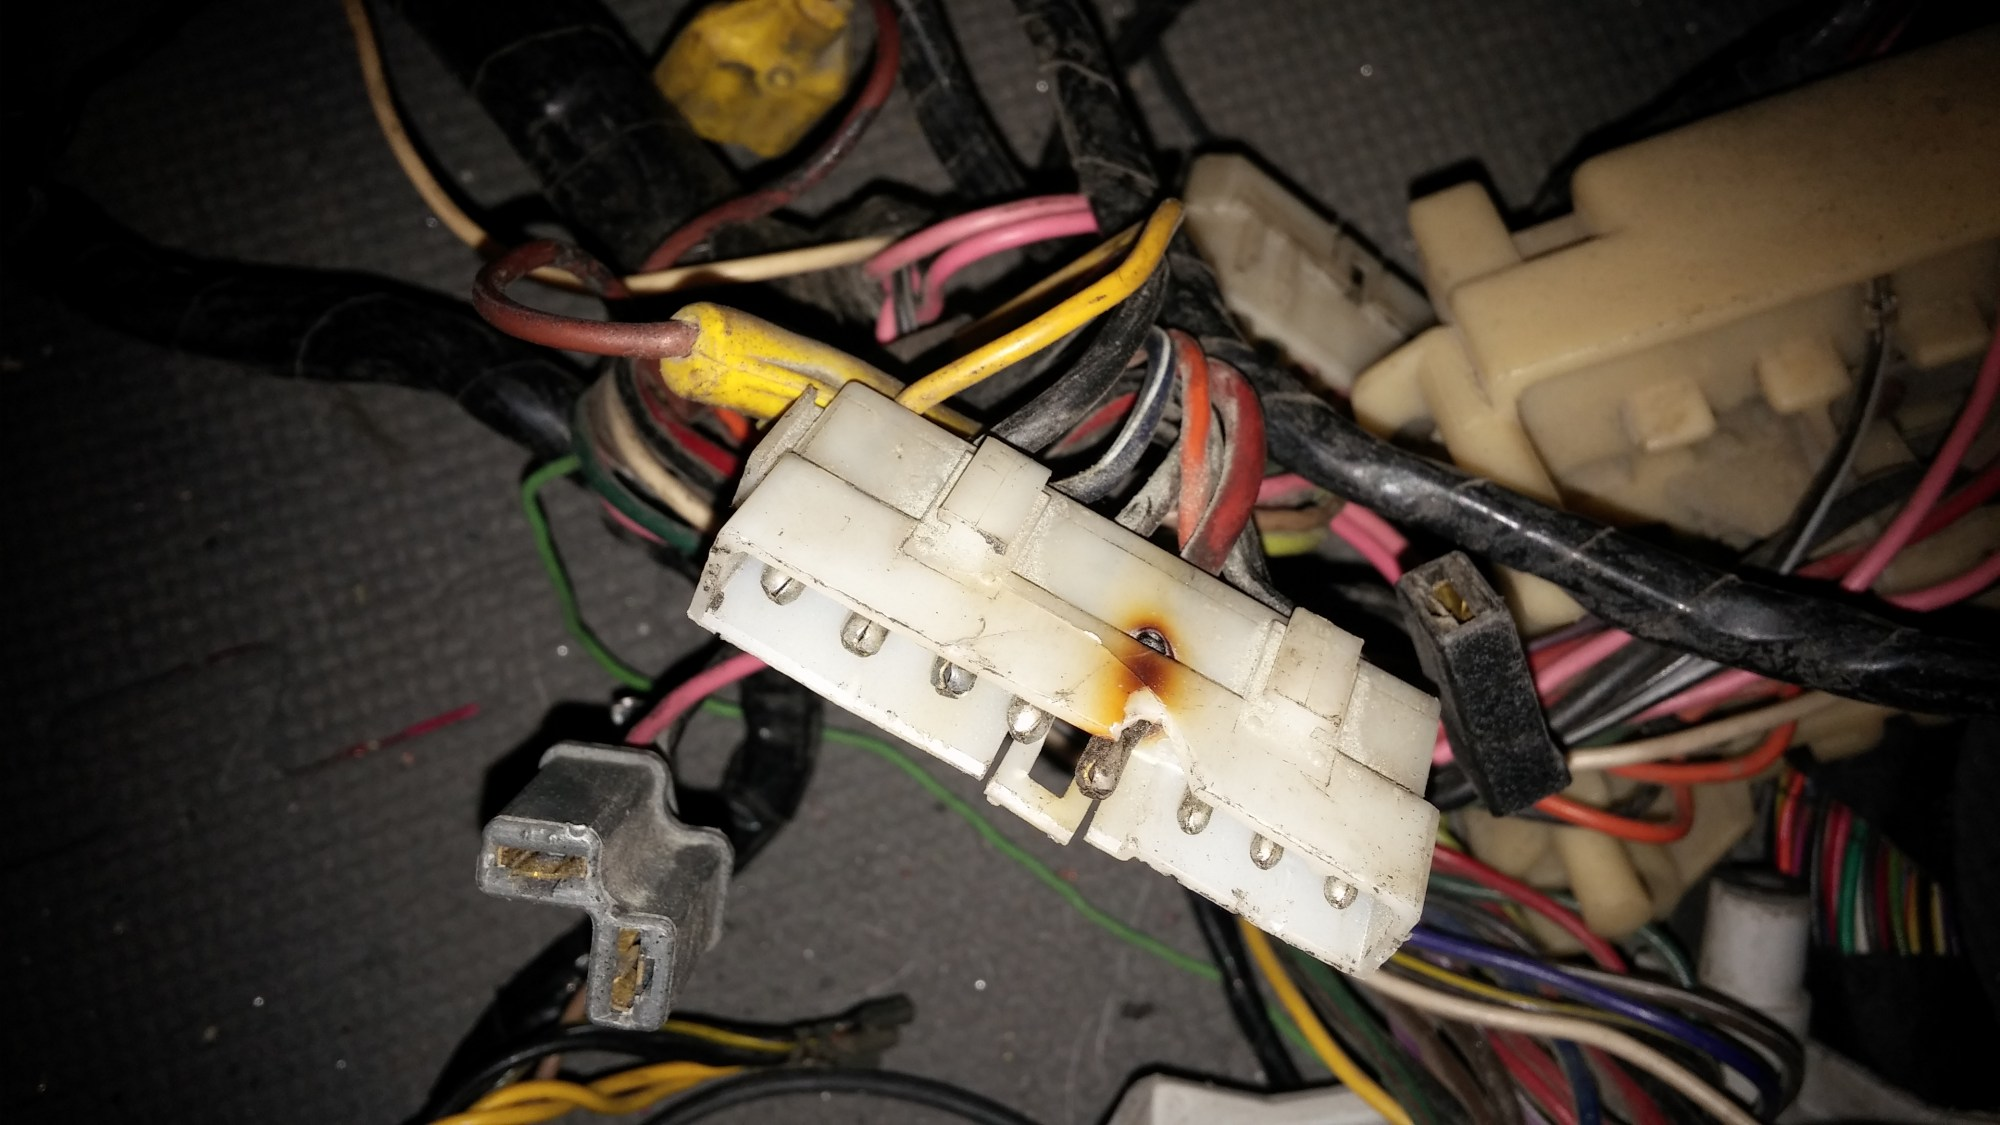 hight resolution of restoration troubleshooting and custom car wiring in bend oregon automotive wiring harness repair